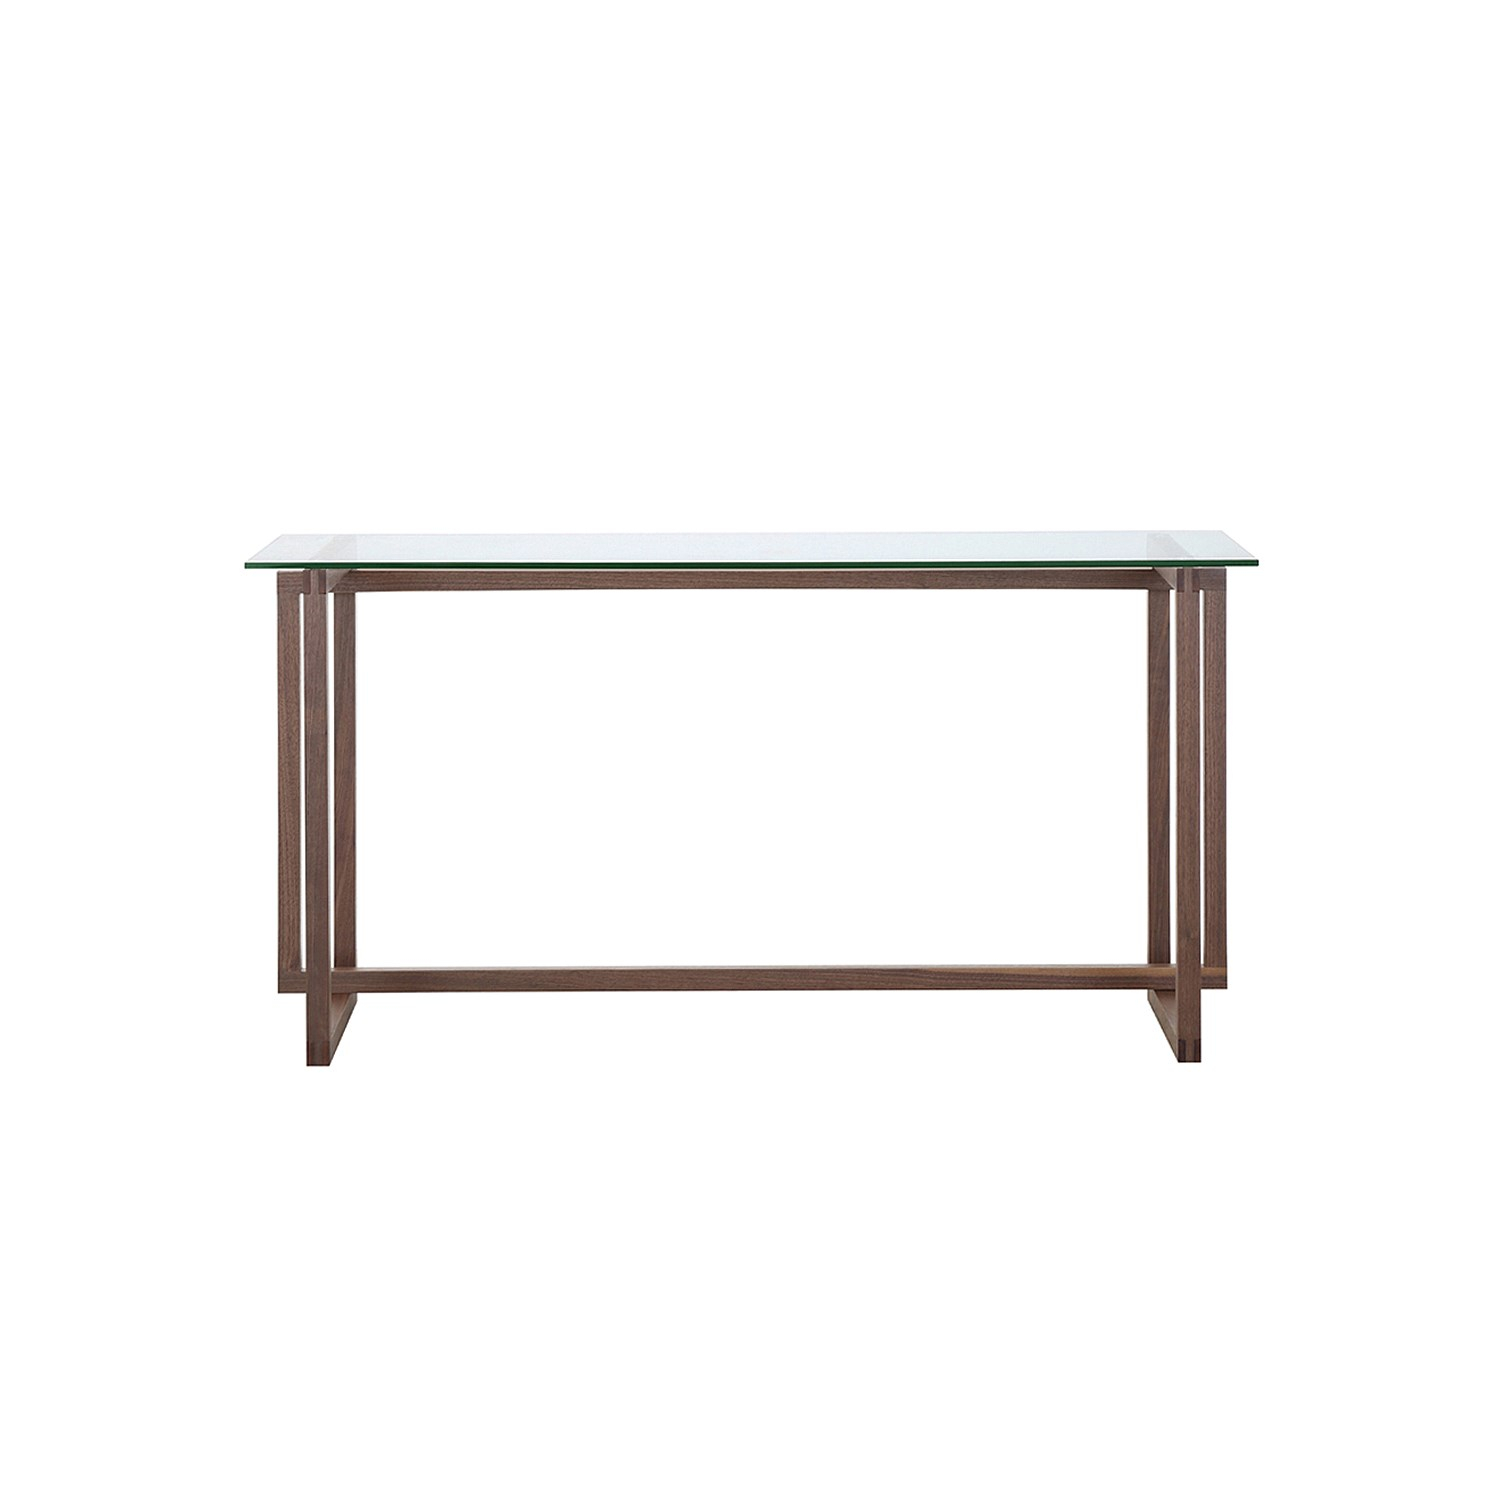 Living Room Furniture,view Range Online Now – Kyra Console Table In Kyra Console Tables (View 3 of 30)